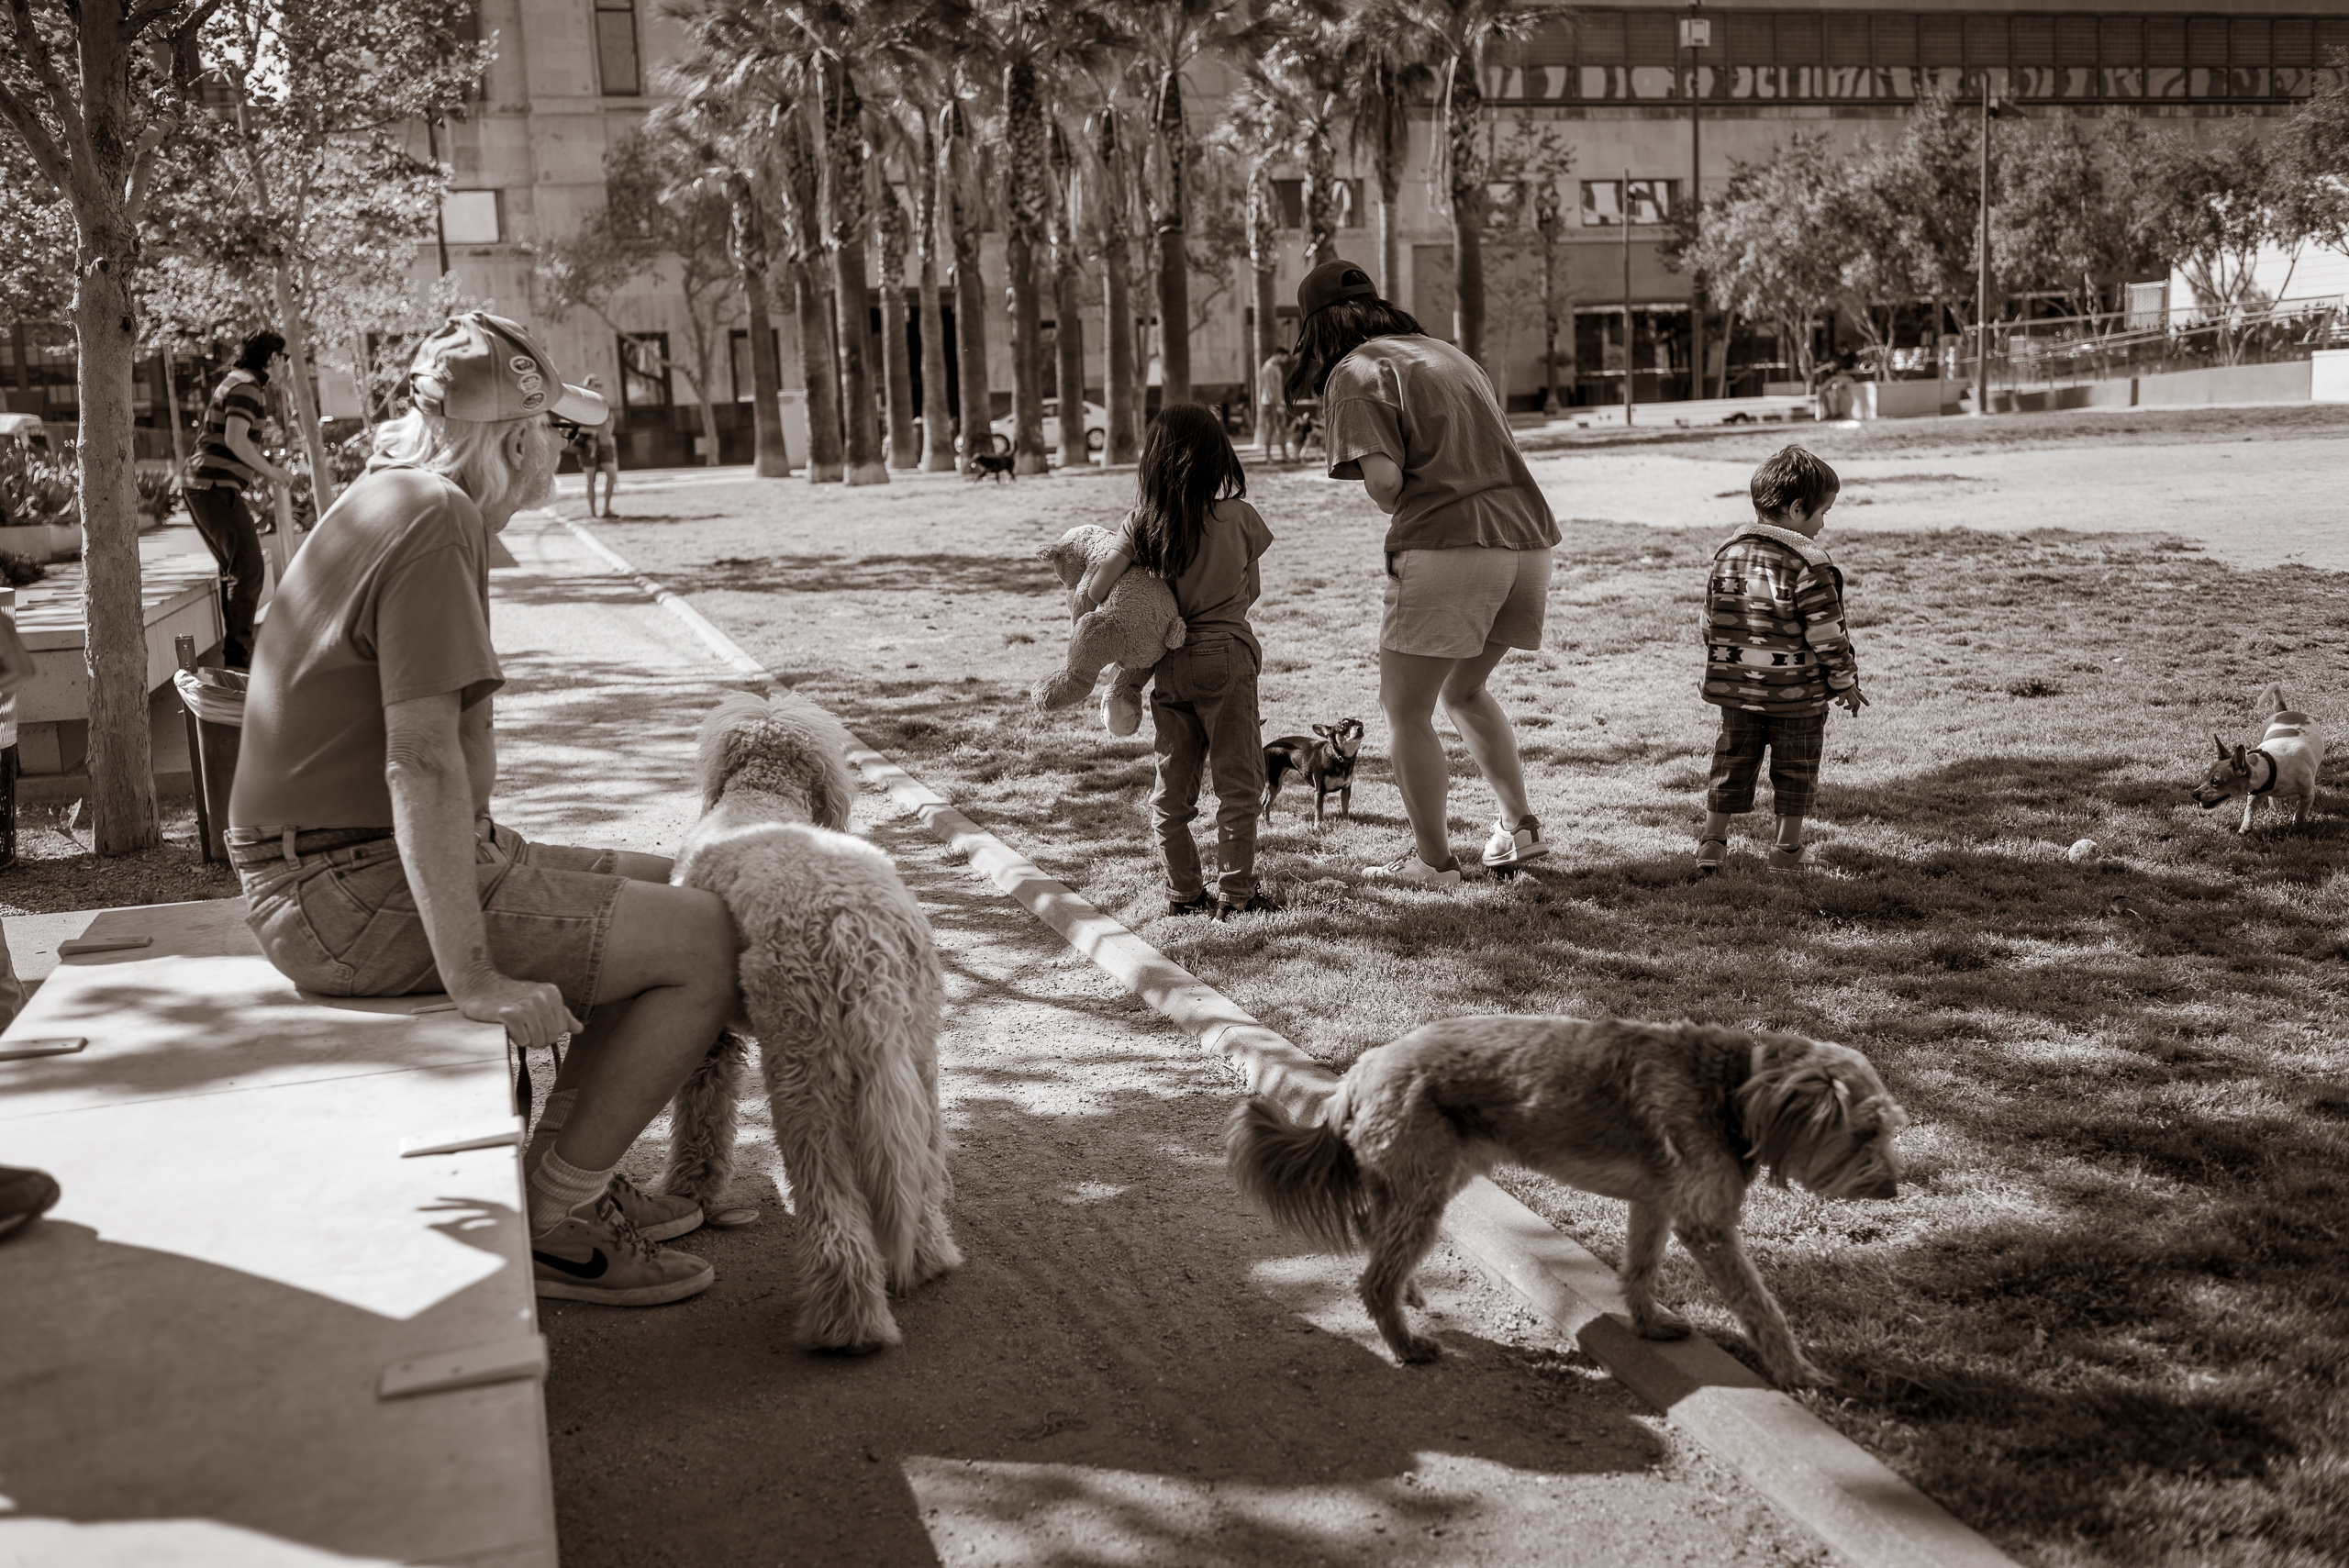 a small girl and a couple of adults are surrounded by many friendly dogs in a small dog park in downtown Los Angeles (DTLA)